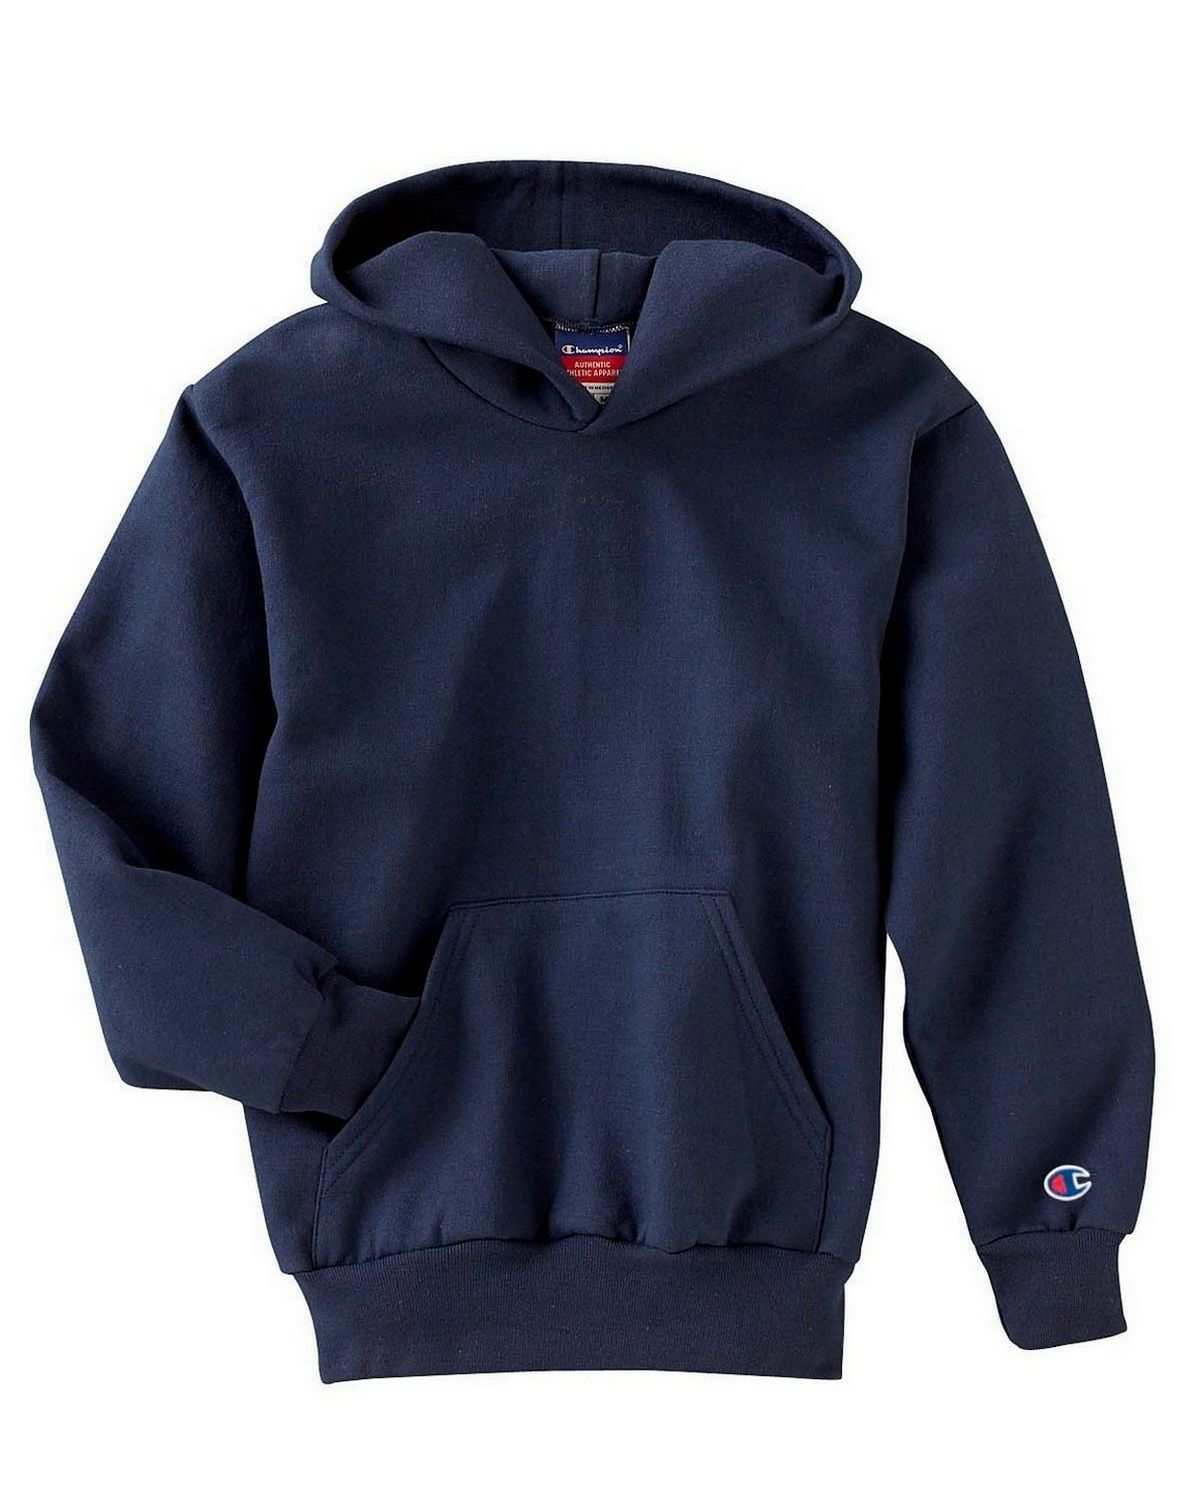 Champion S790 Youth EcoSmart Pullover Hood - Navy - M S790